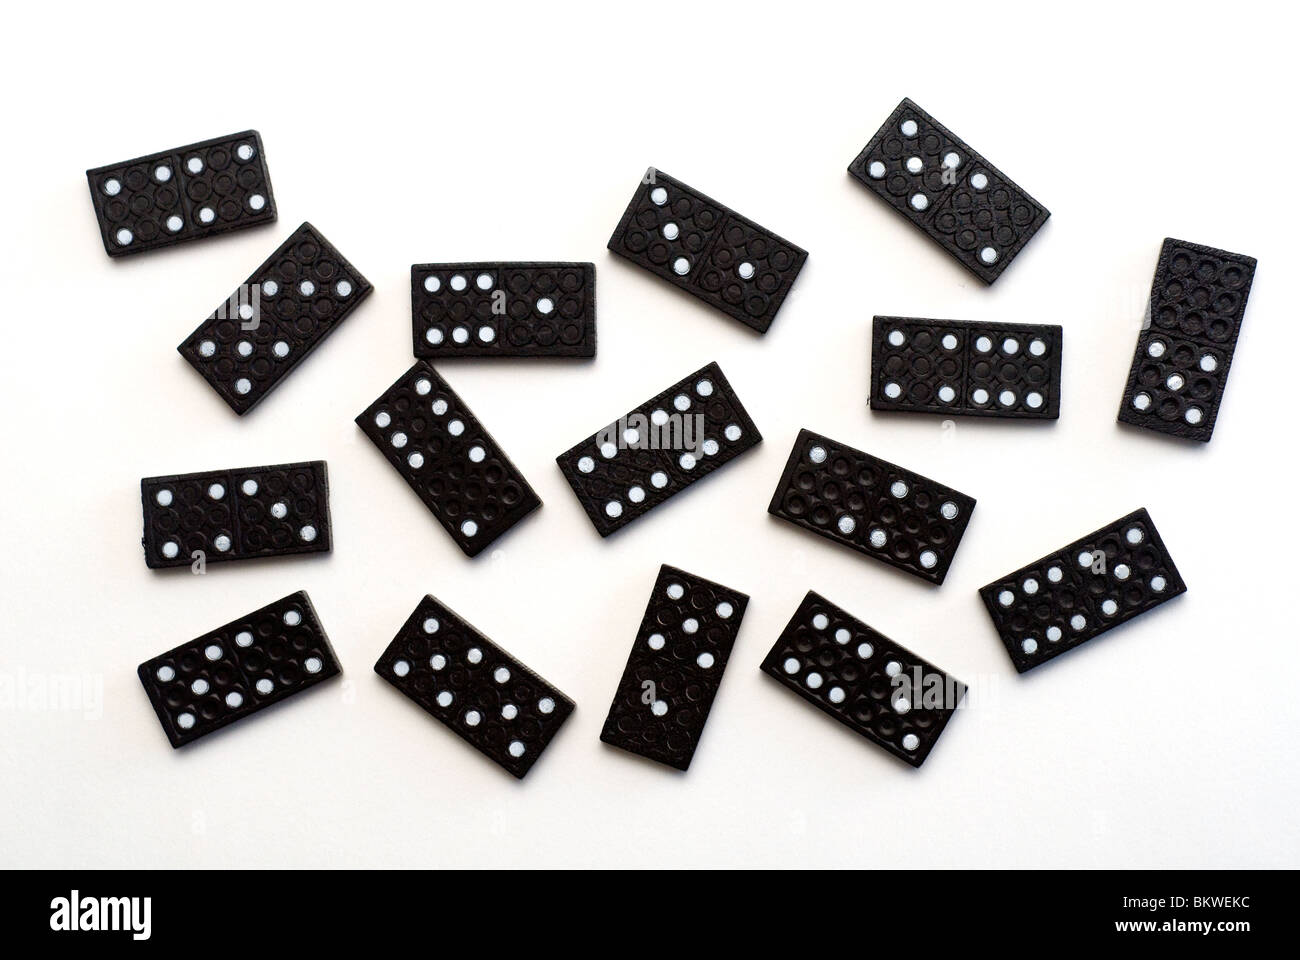 Game Of Dominos Stock Photos & Game Of Dominos Stock Images - Alamy